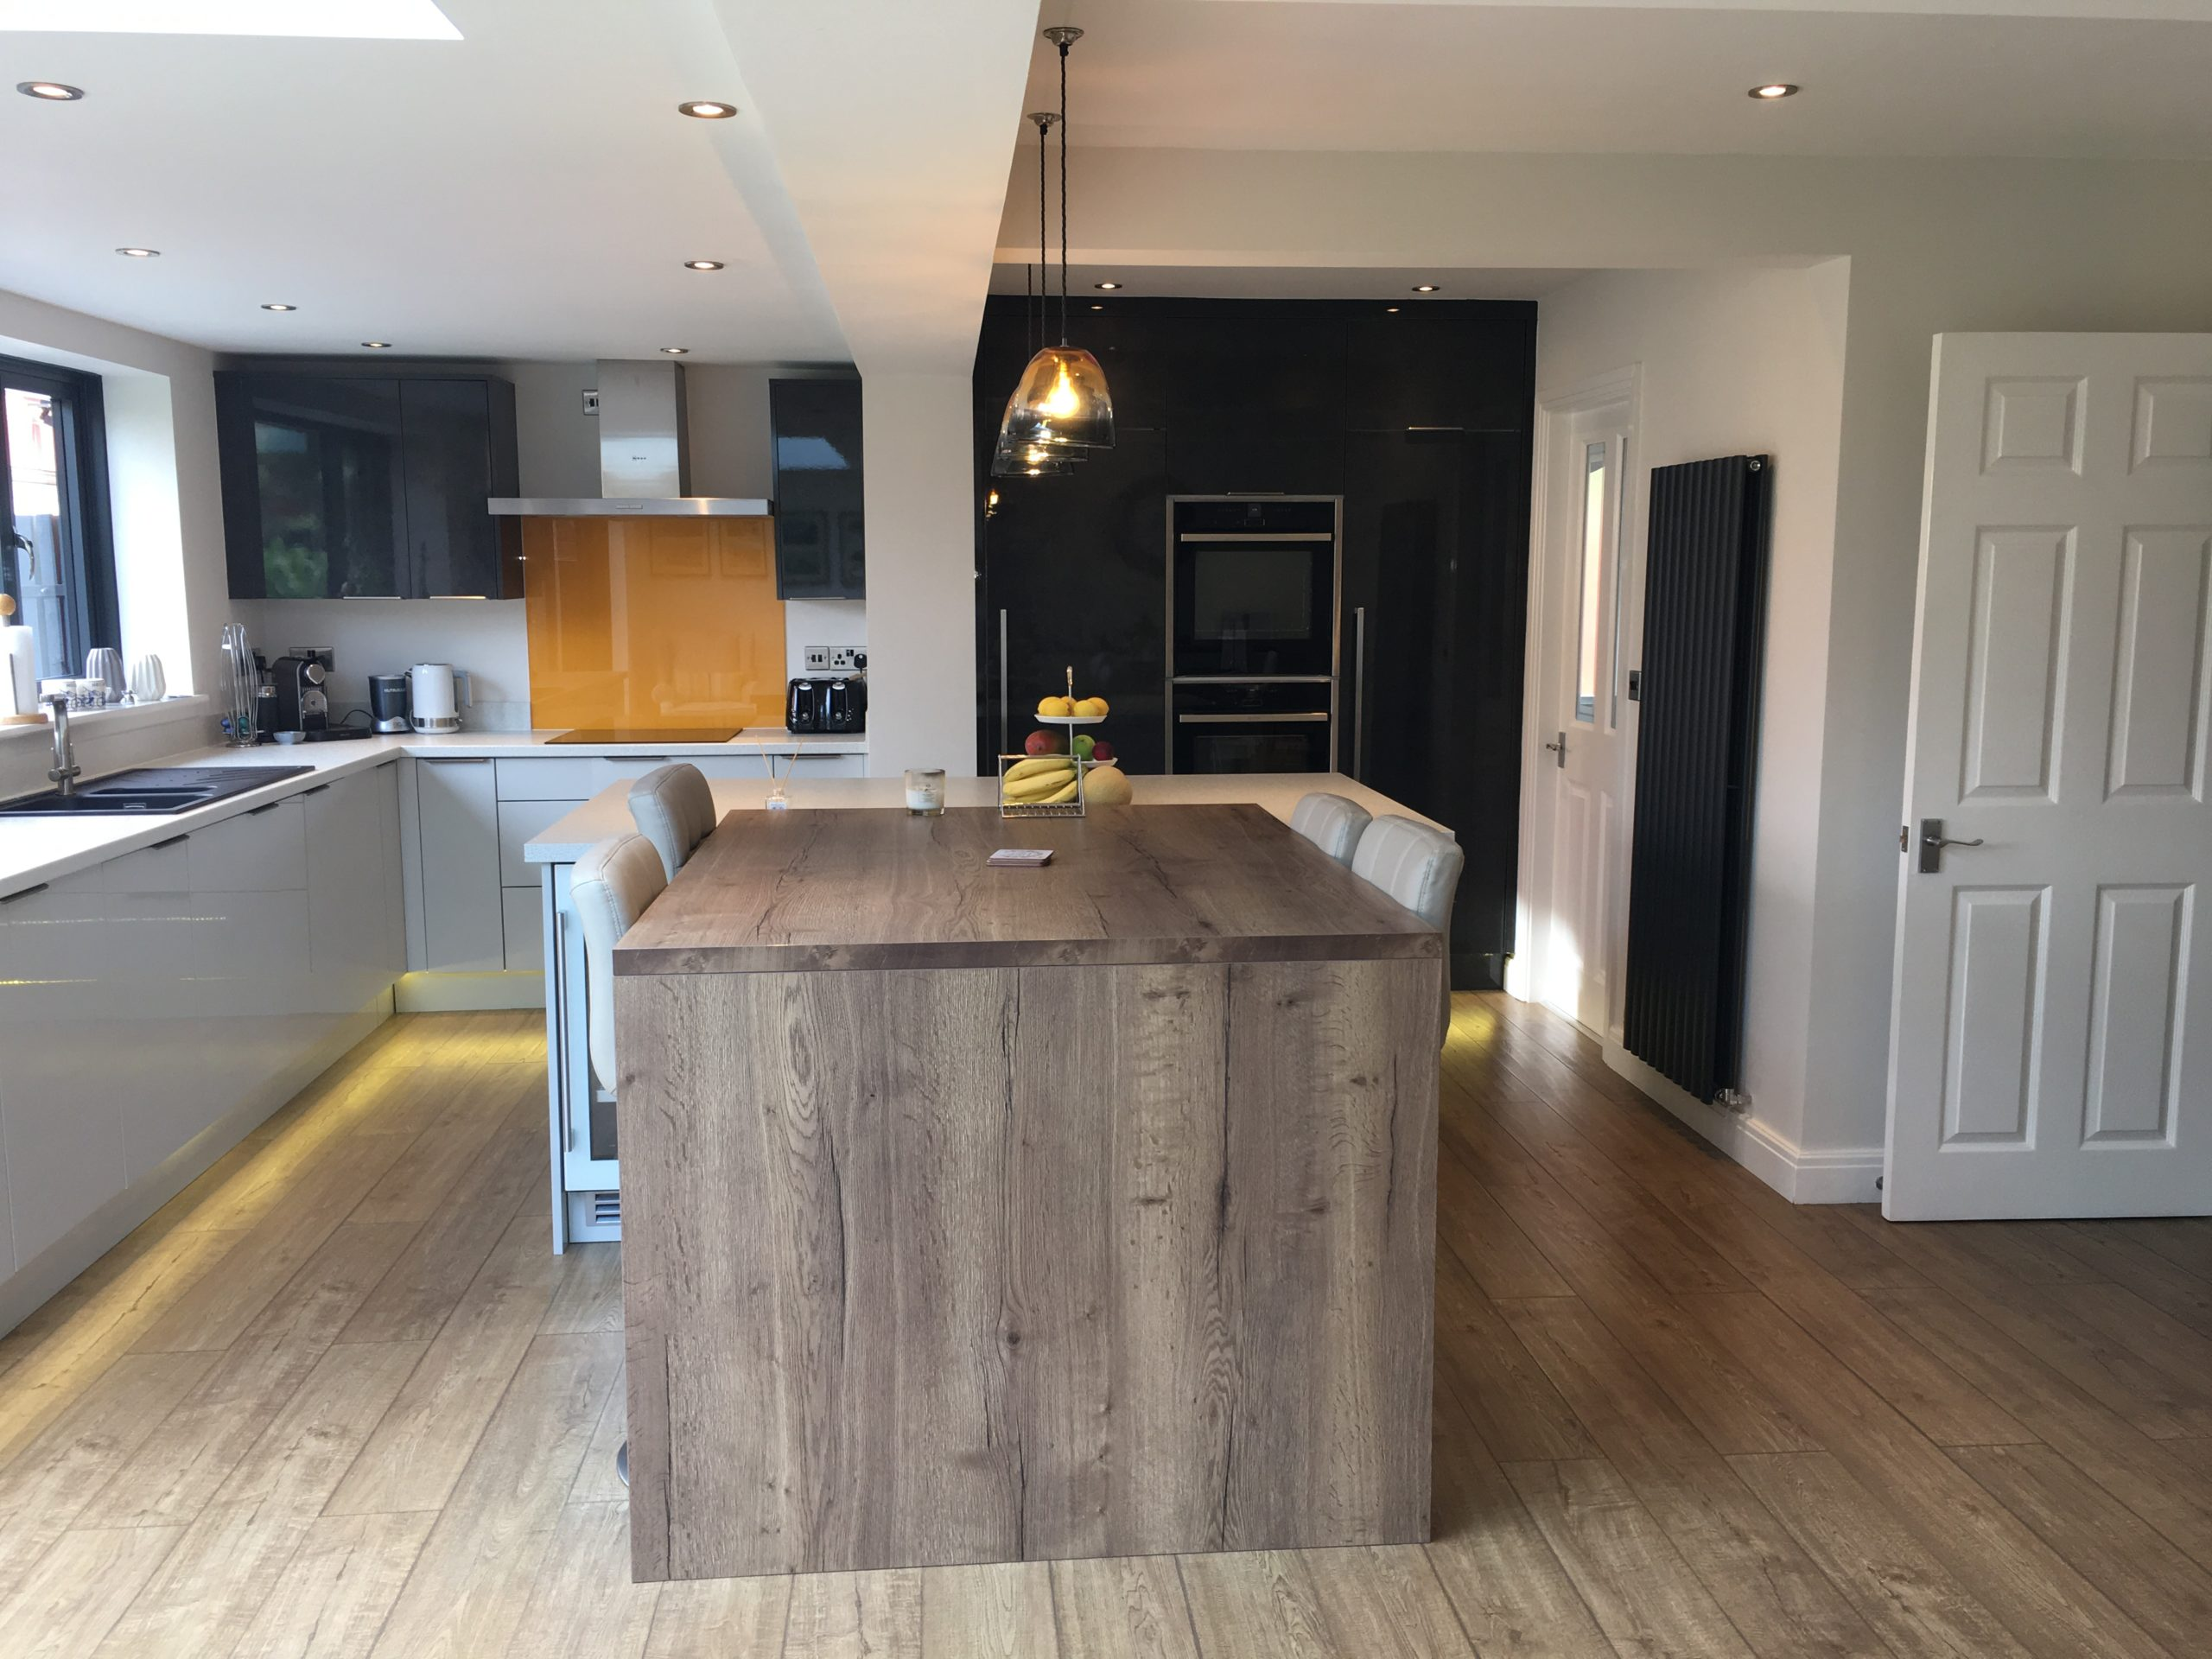 Kitchen of modern single storey extension in Leeds